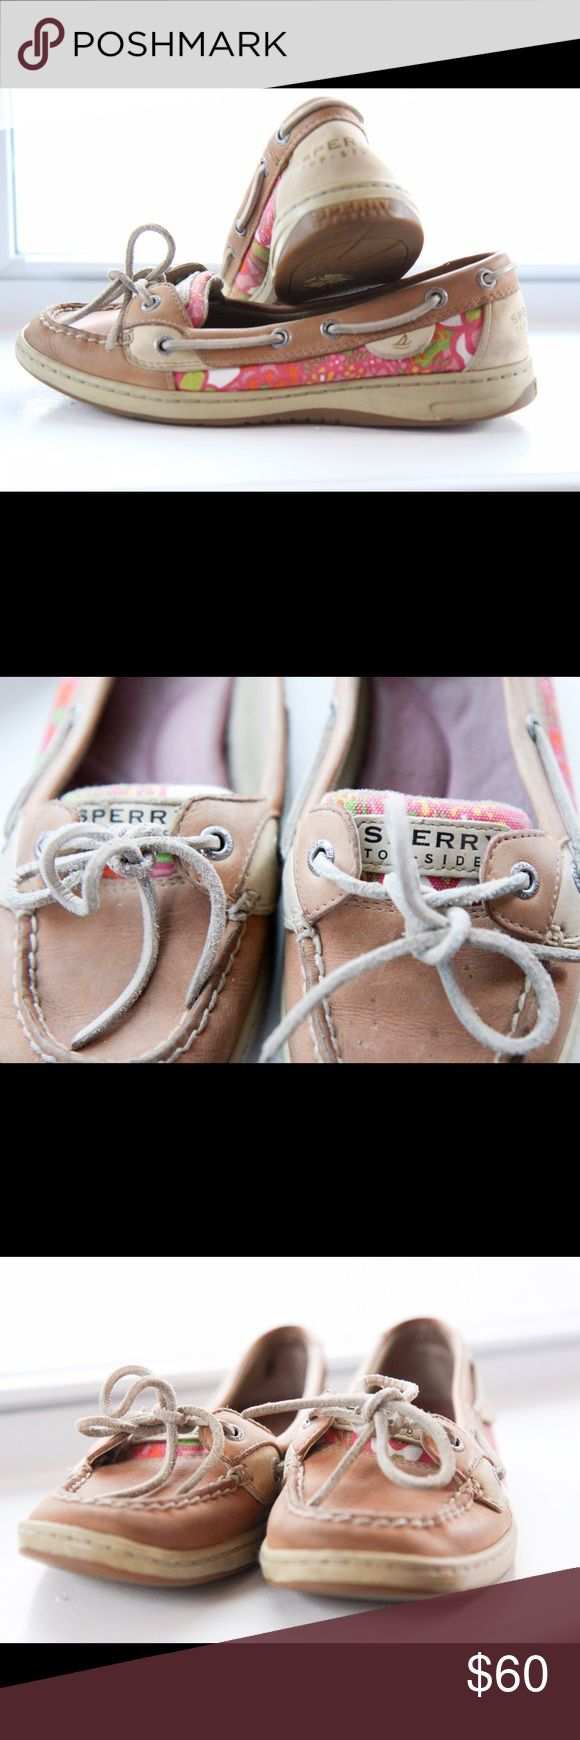 Sperry Boat Shoe with Lily Pulitzer design Sperry Firefish boat shoe. Lilly Pulitzer slide on. Gently used. Sperry Top-Sider Shoes Flats & Loafers